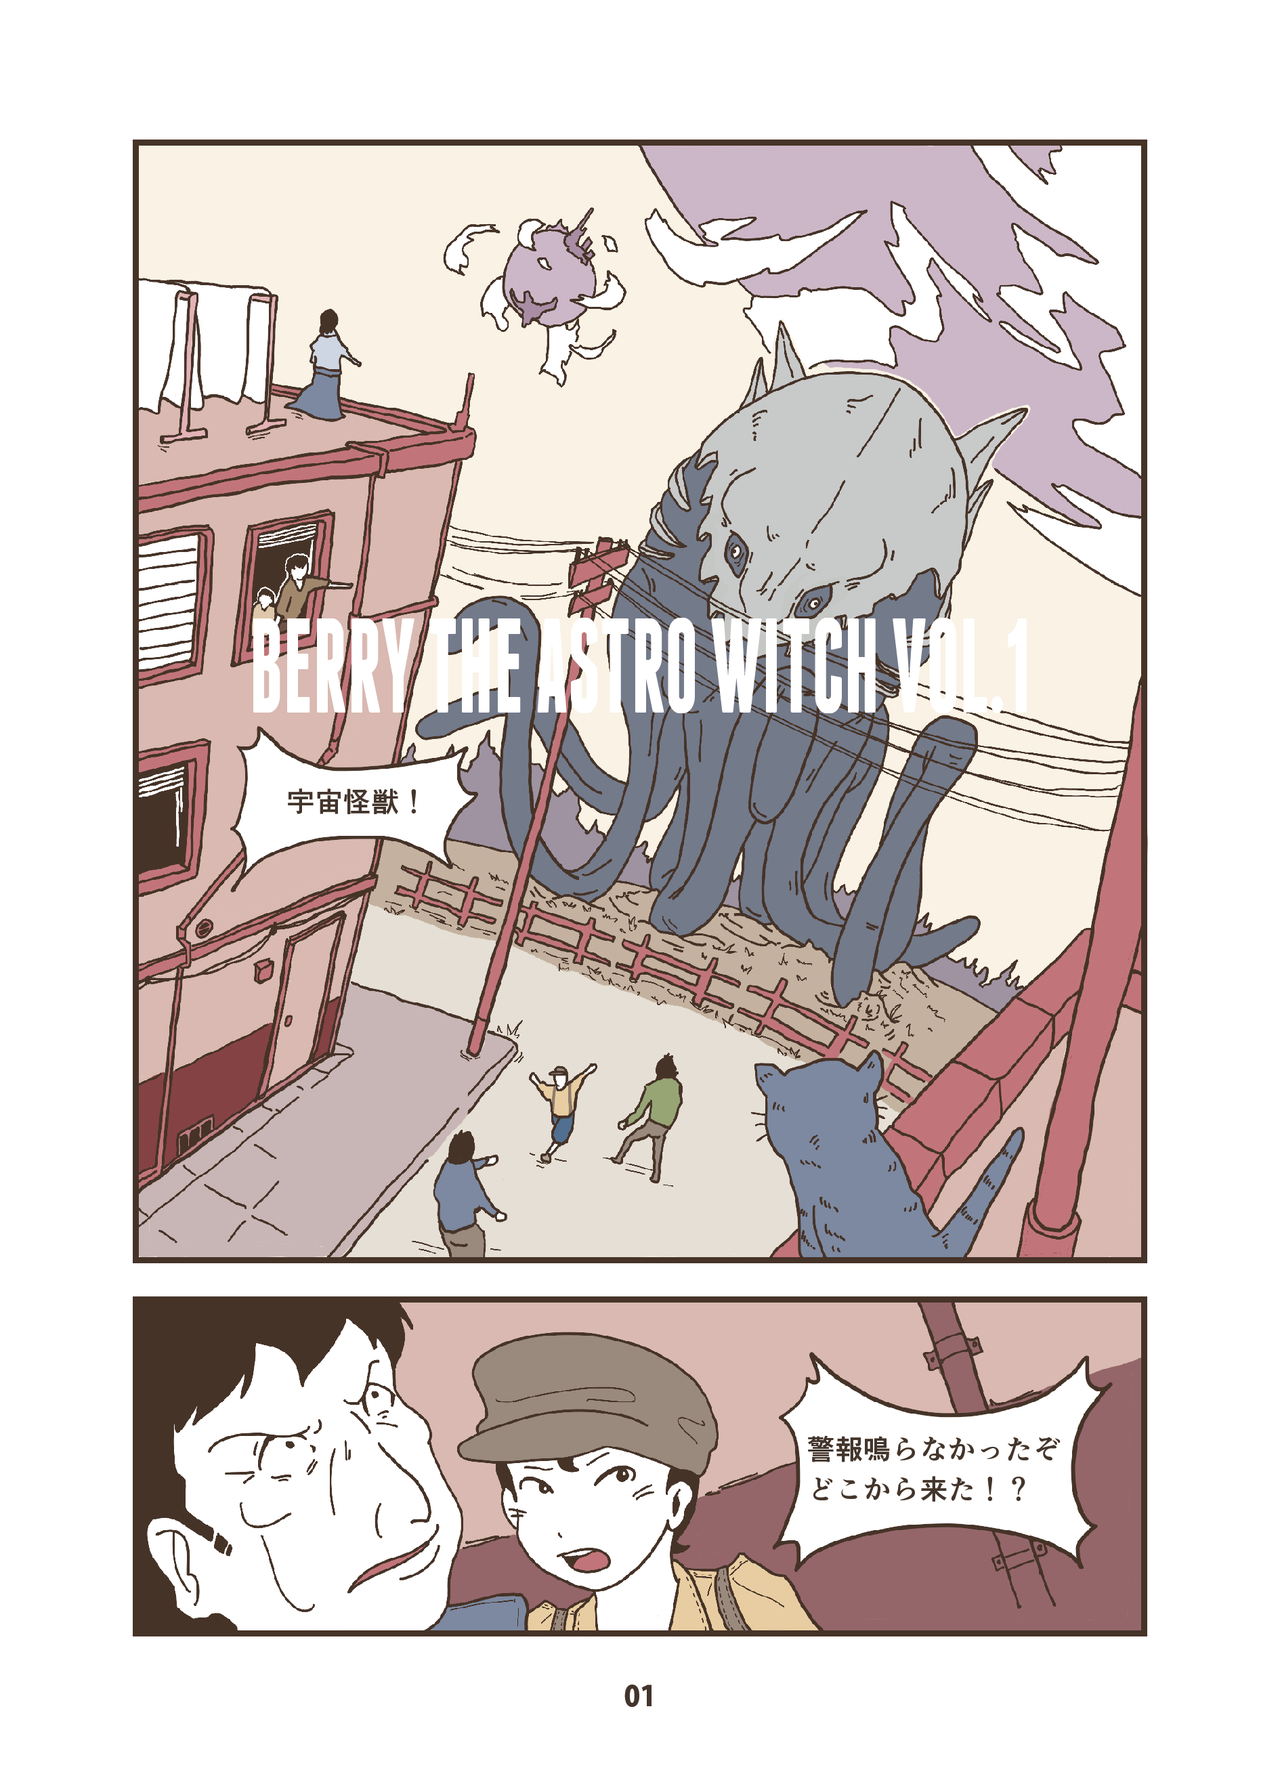 Berry_the_astro_witch_ep01_note_アートボード1